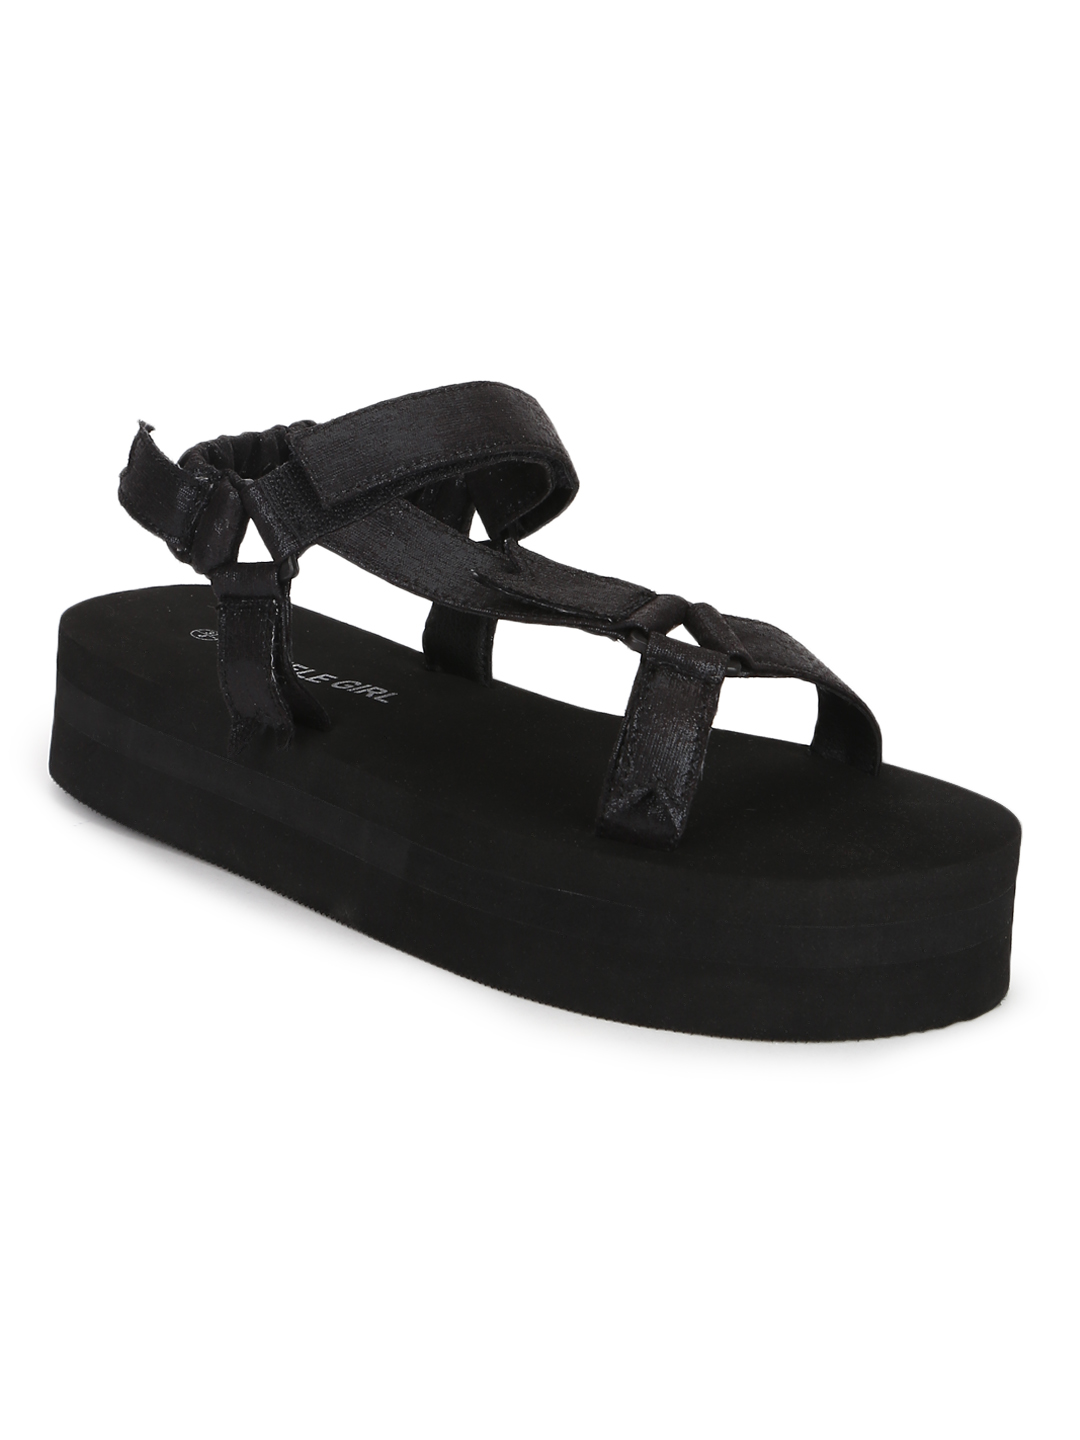 Truffle Collection   Truffle Collection Black PU Printed Platform Sandals